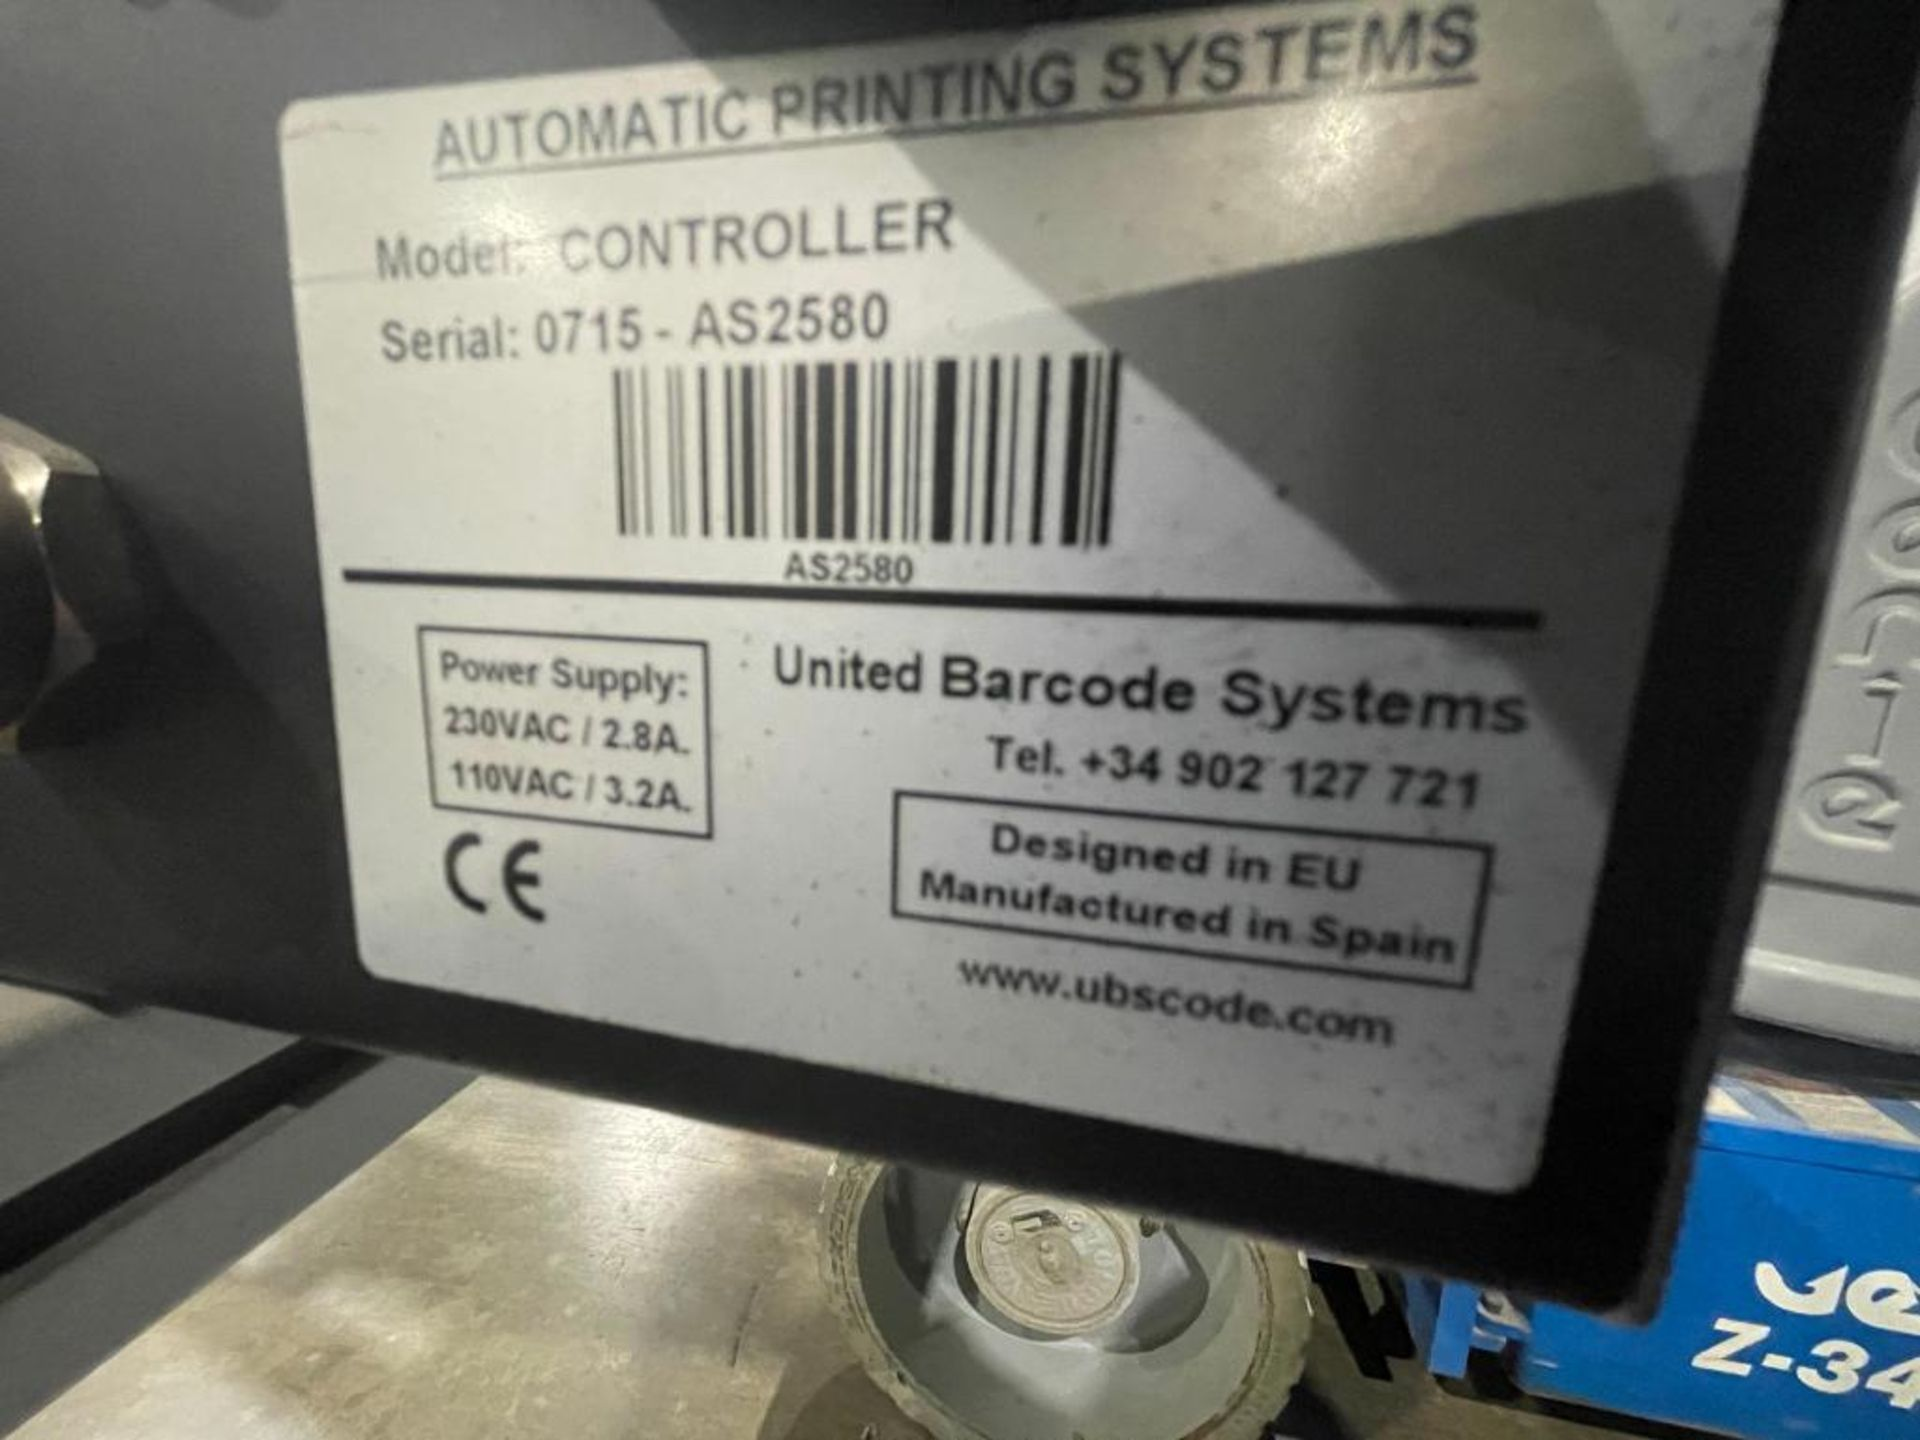 Automatic Printing Systems case coder - Image 4 of 13